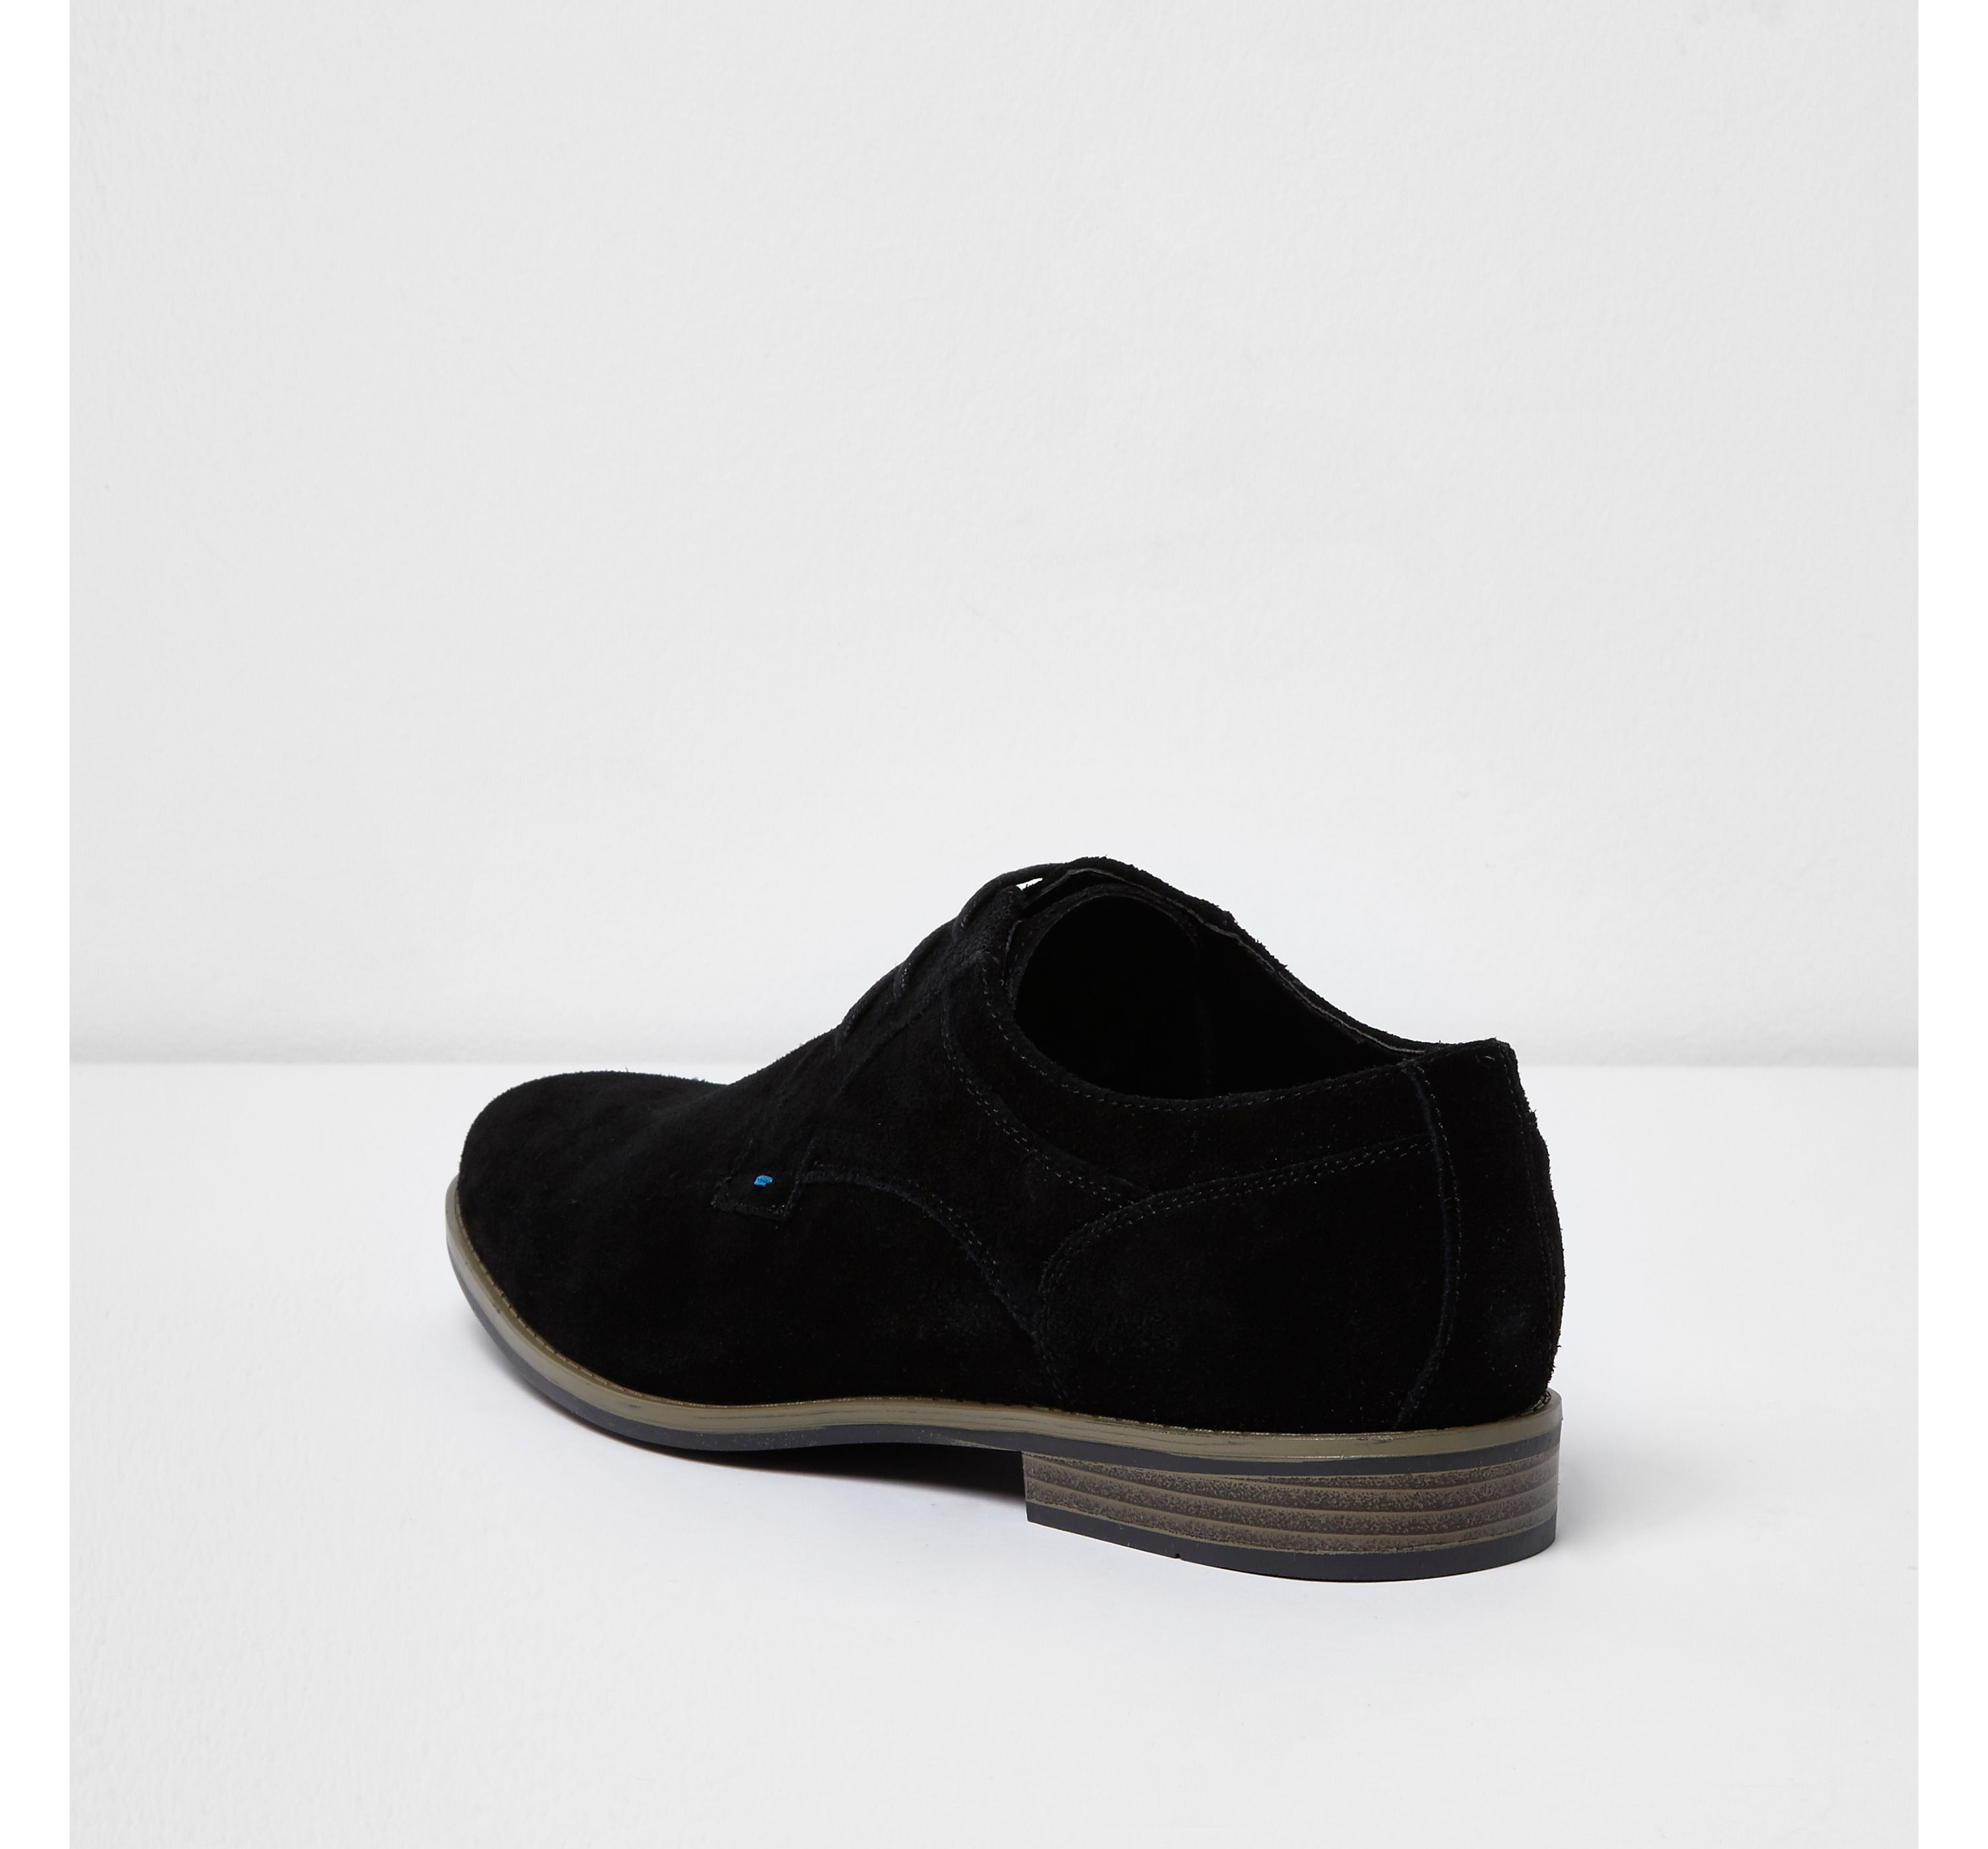 Mens Black suede derby shoes by River